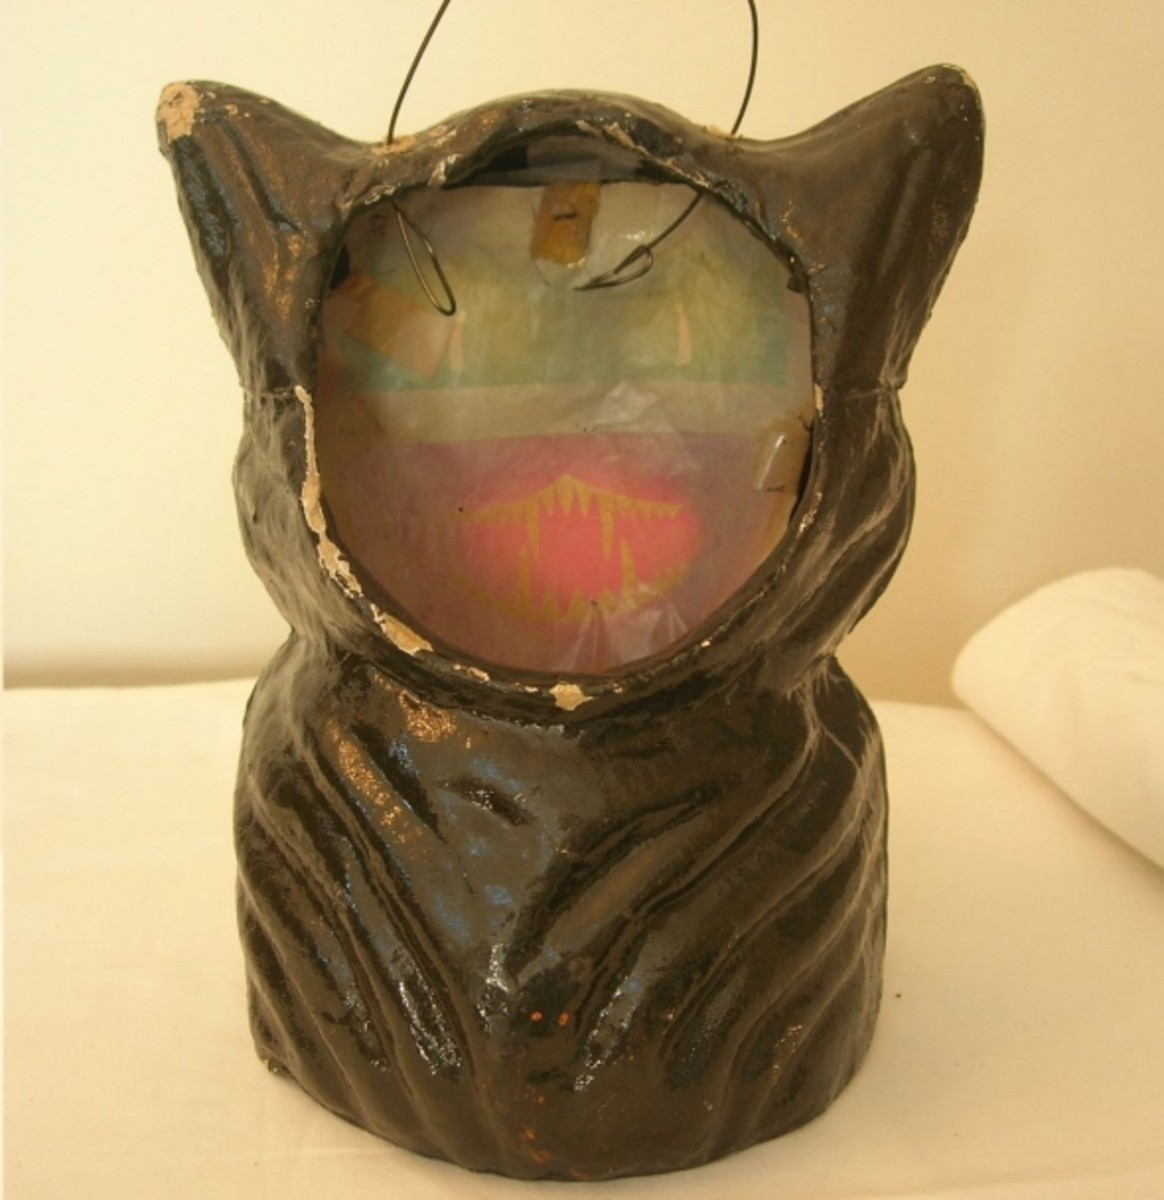 Inside the paper mache cat, a piece of paper would be taped that had the eyes and mouth design printed on it.